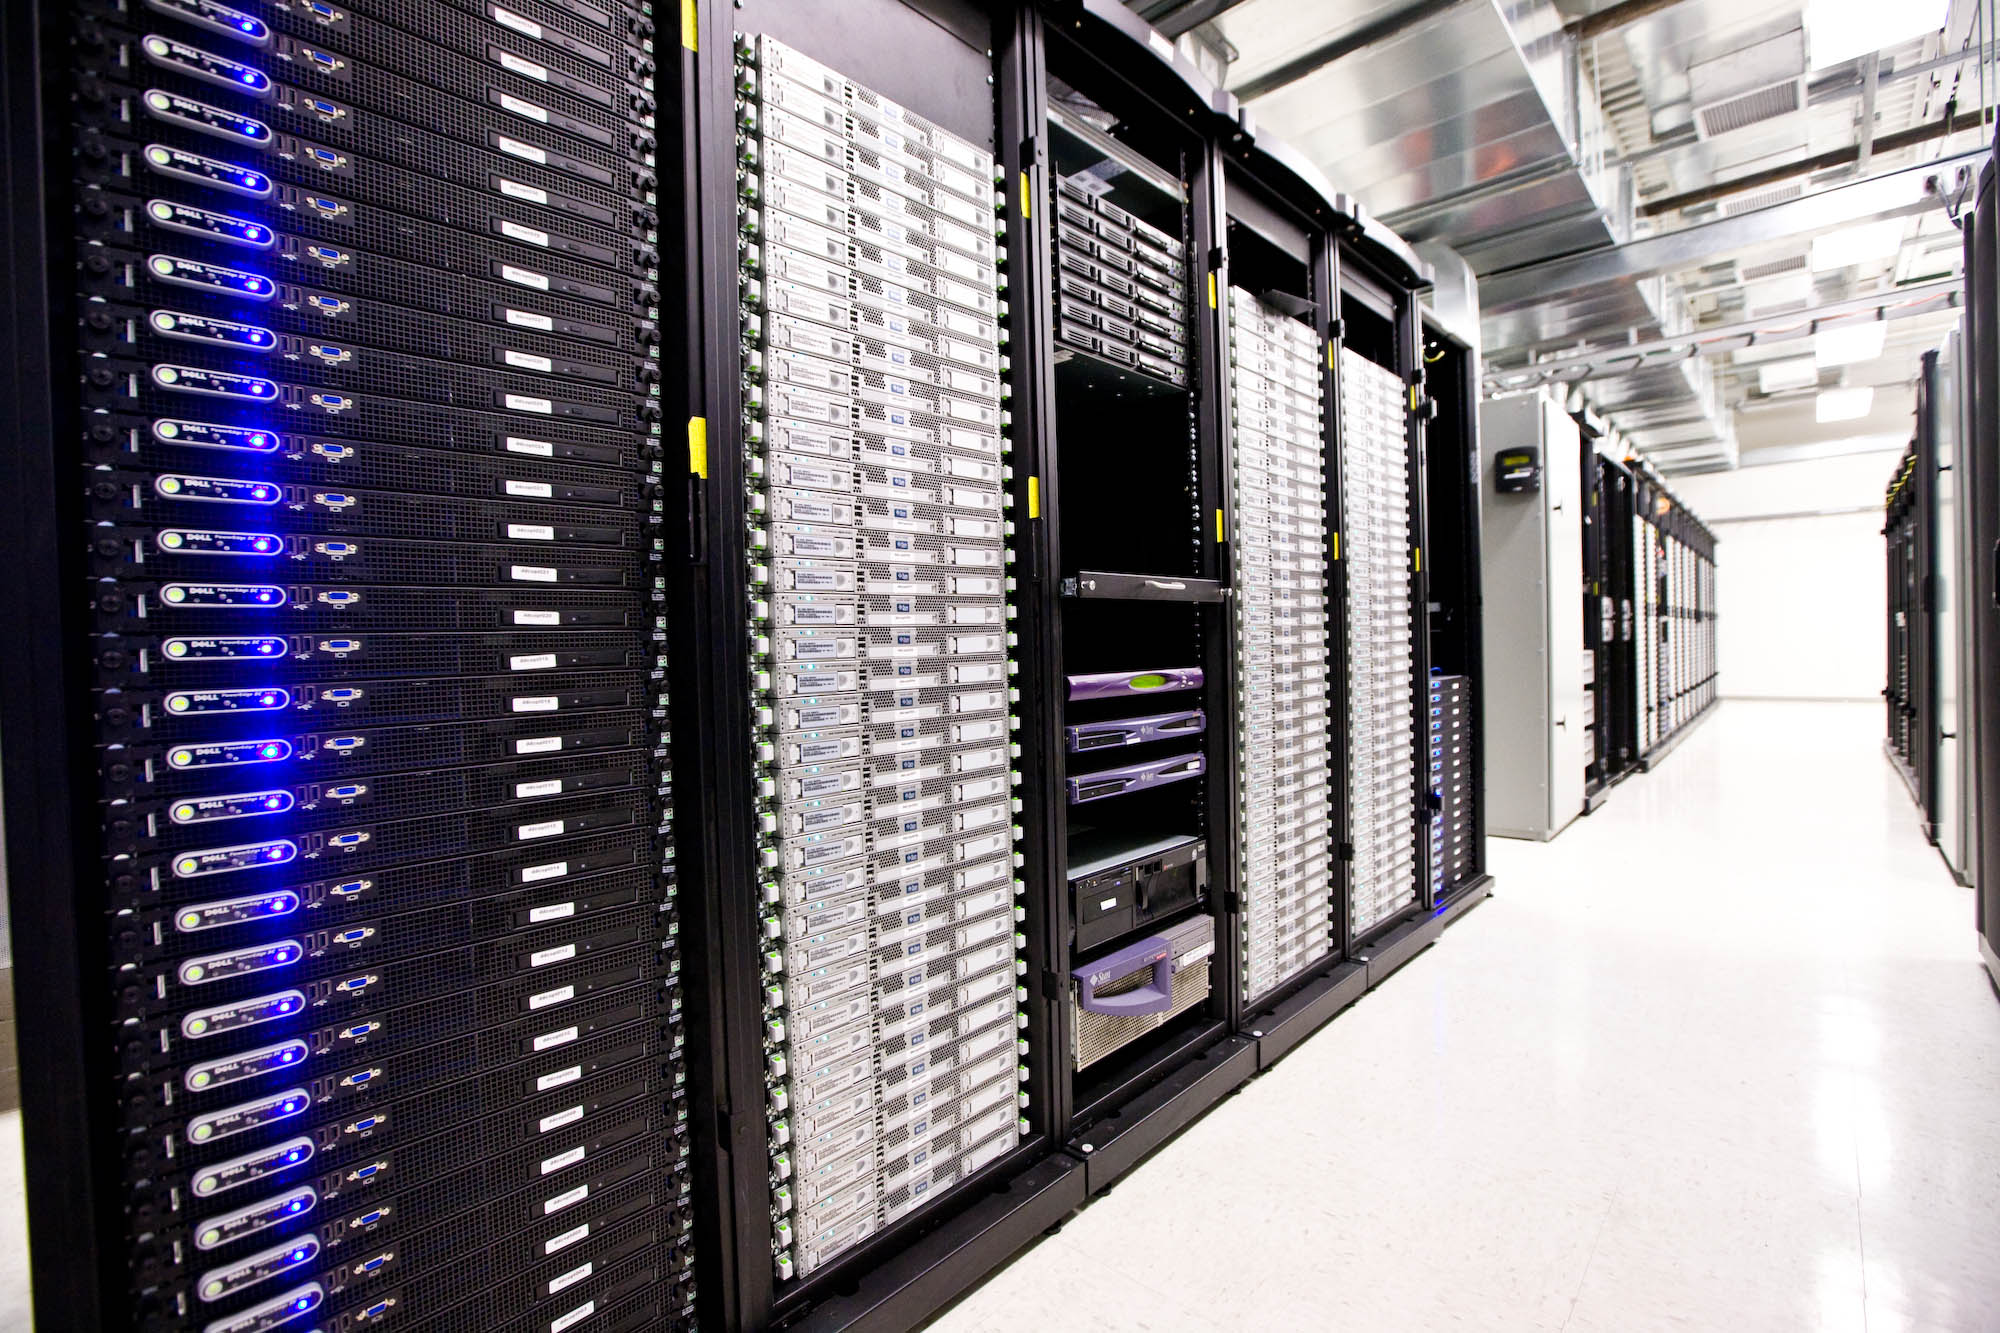 Schuff Steel Awarded Contract for Data Center in Silicon Valley CA